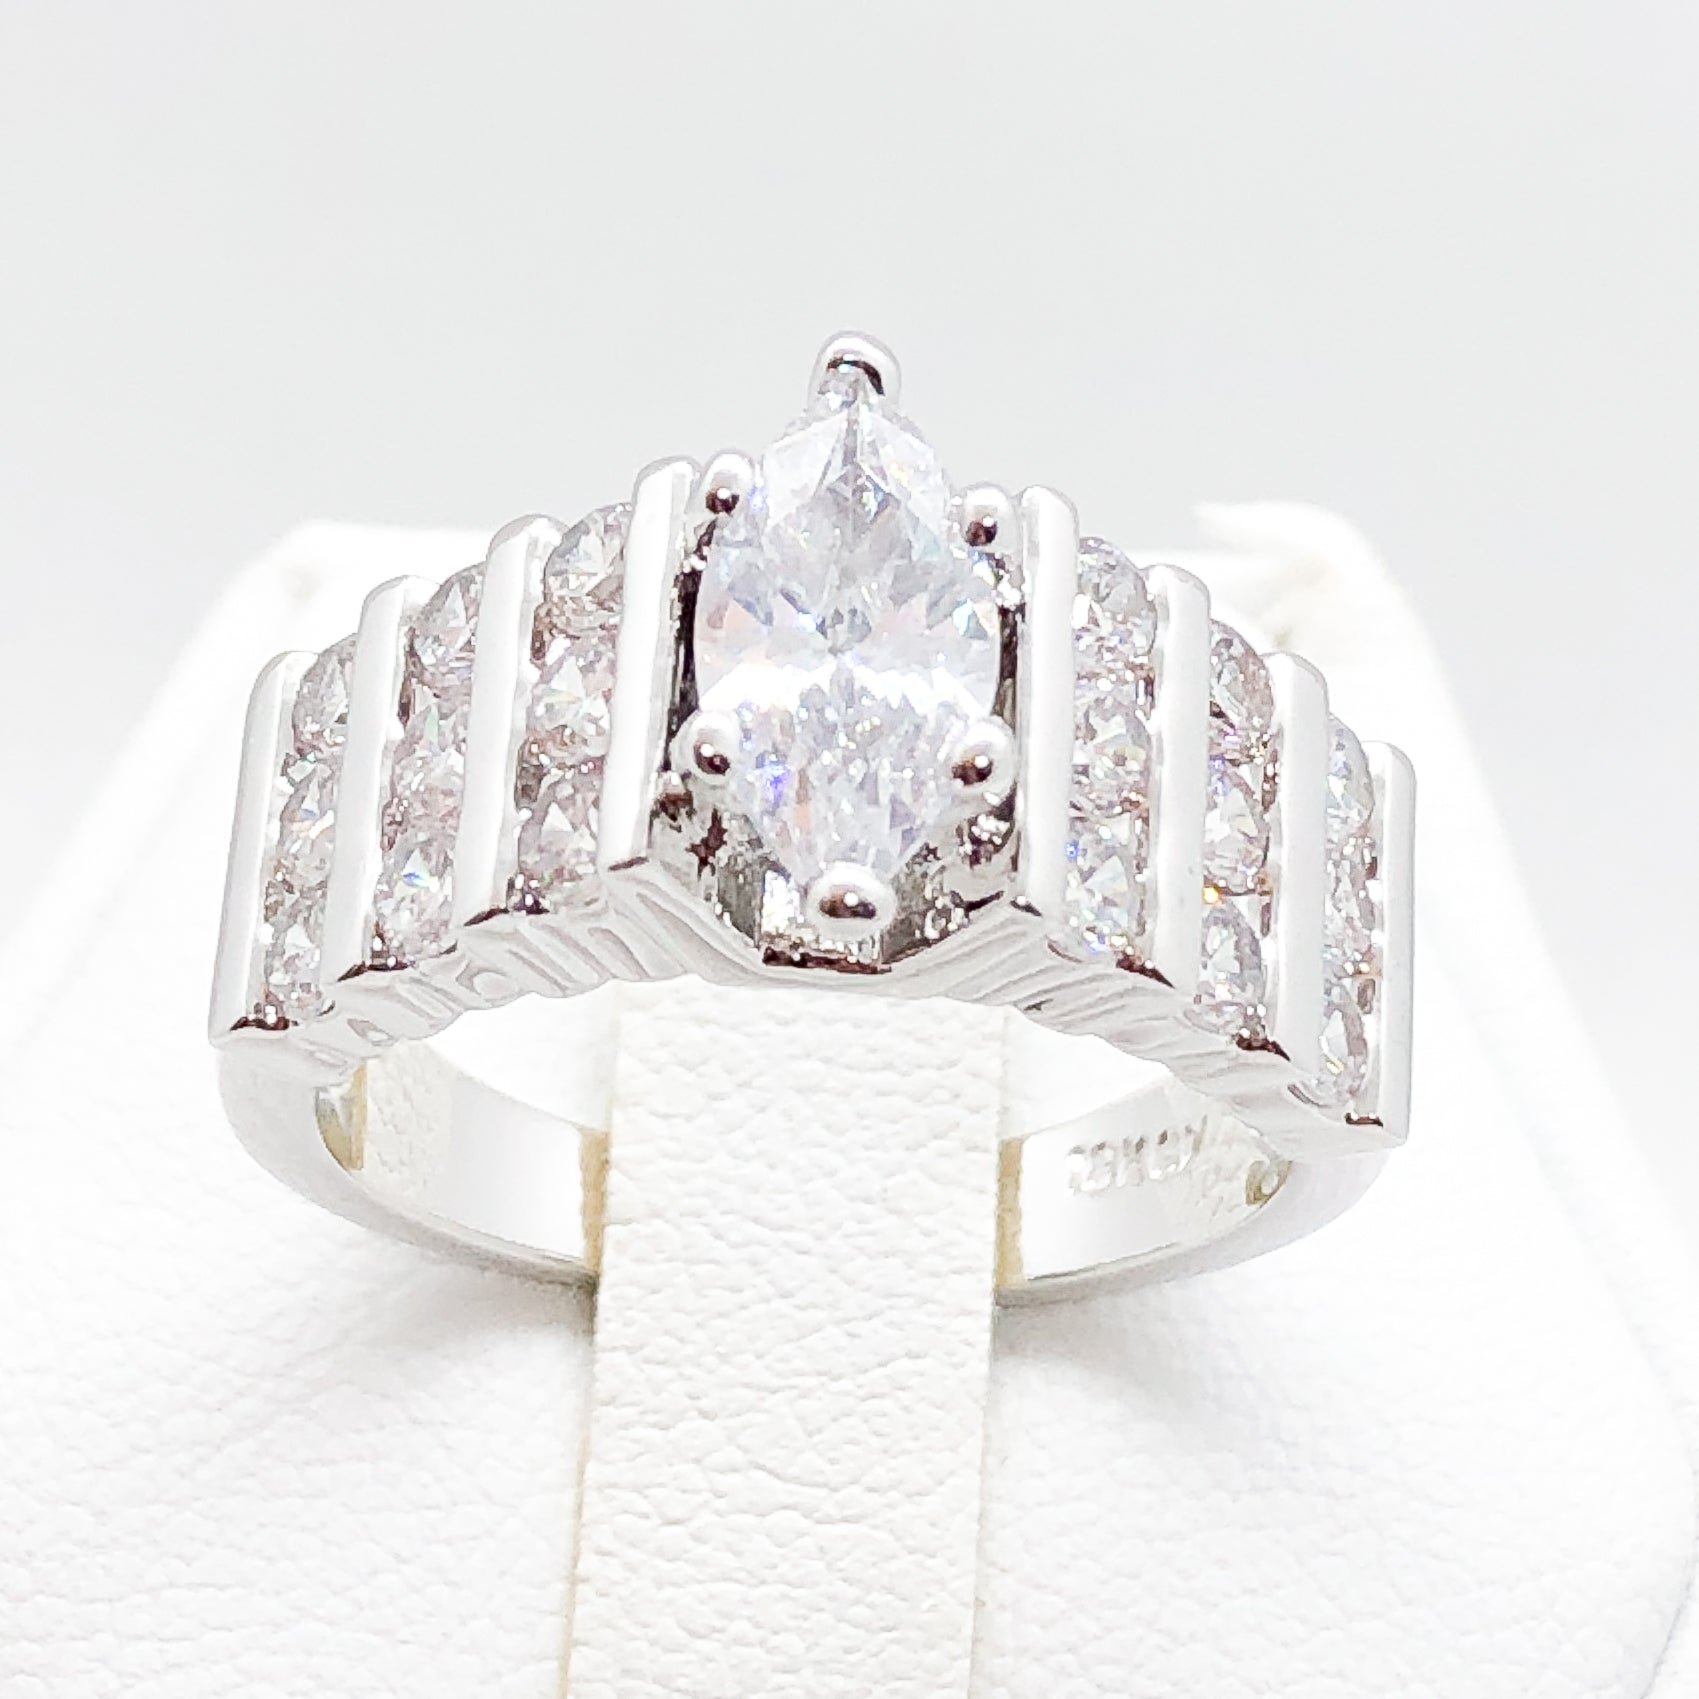 ID:R0537 Women Vintage Jewelry 18K White Gold GF Wonderful Engagement Wedding Bridal Solitaire Diamonique Ring With Accent